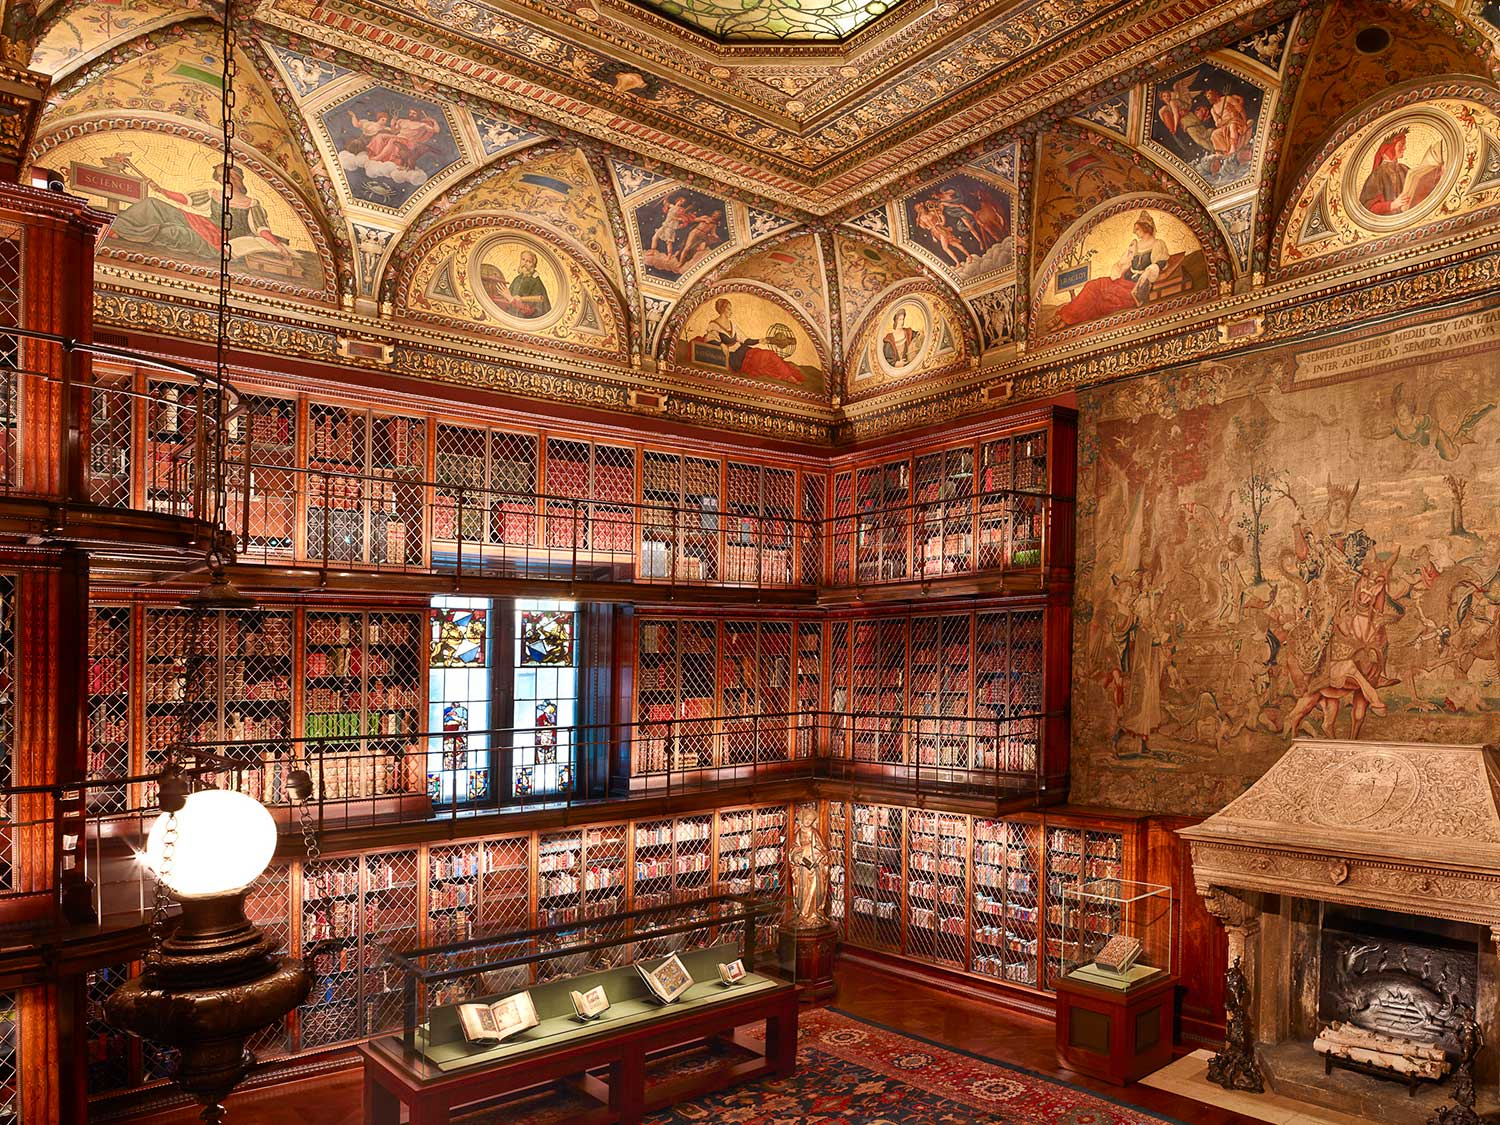 6-pierpont-morgan-s-library